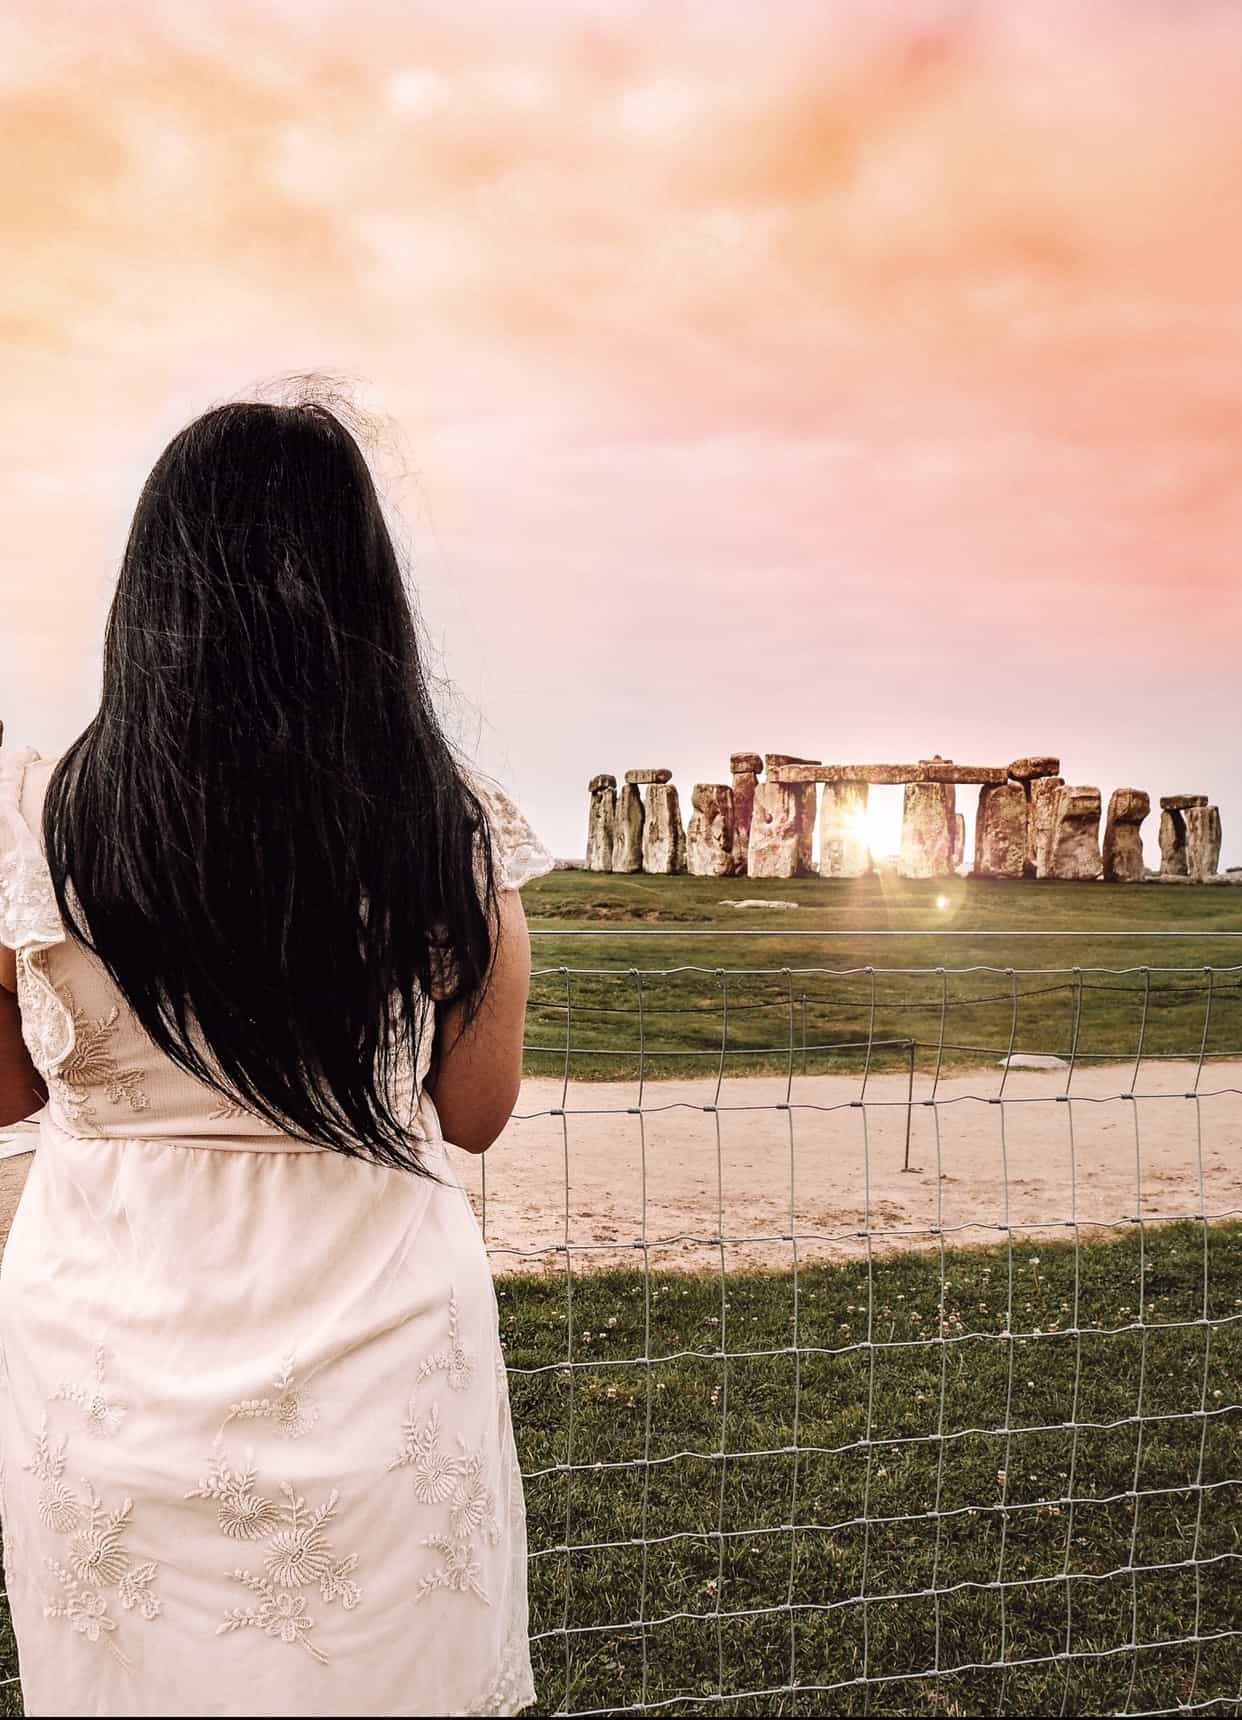 WILTSHIRE'S BEST KEPT SECRET: HOW TO VISIT STONEHENGE FOR FREE!